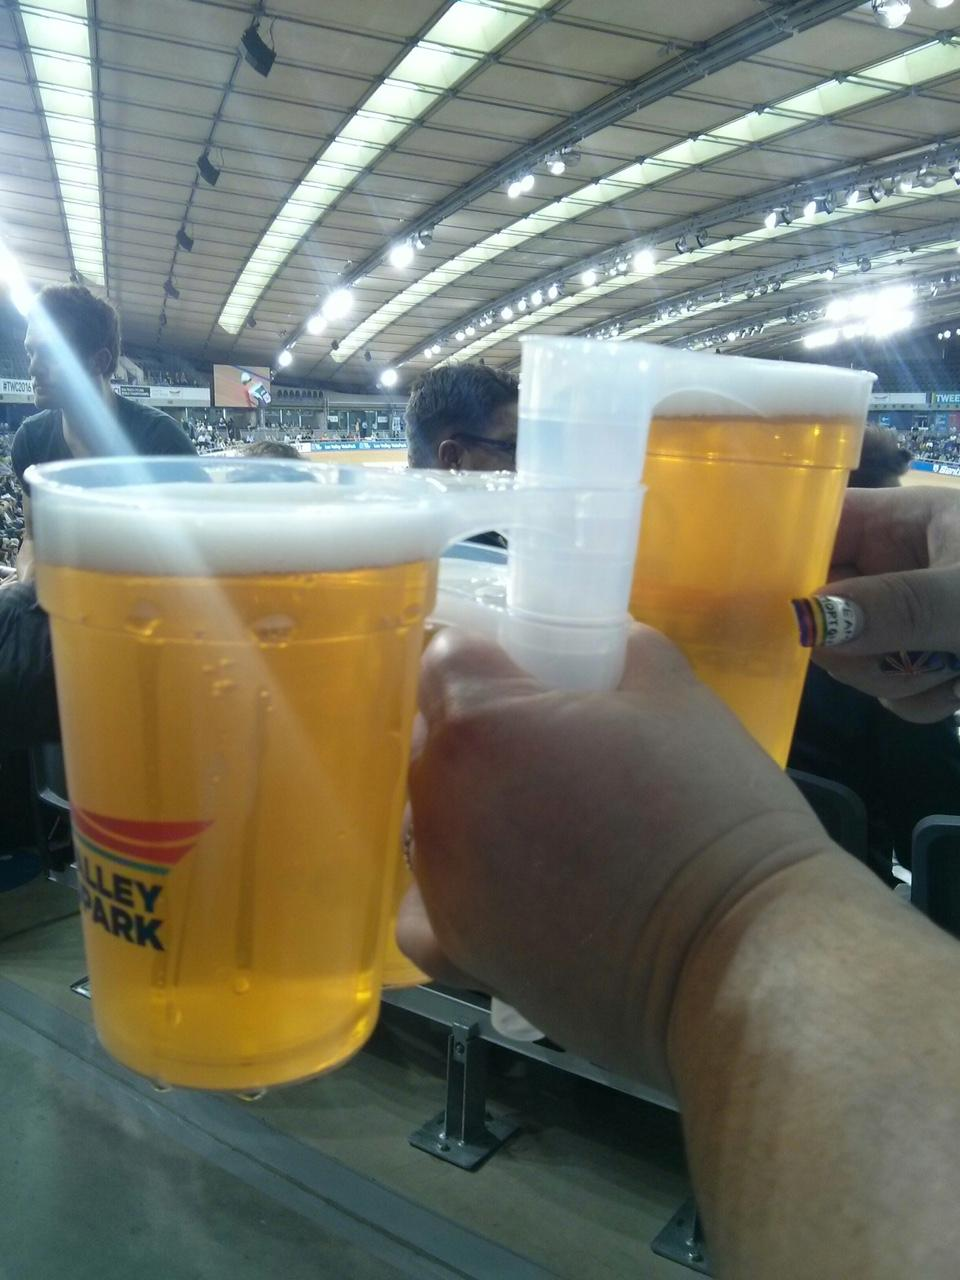 Lee Valley beer cups 02 (picture copyright Laura Laker).jpeg